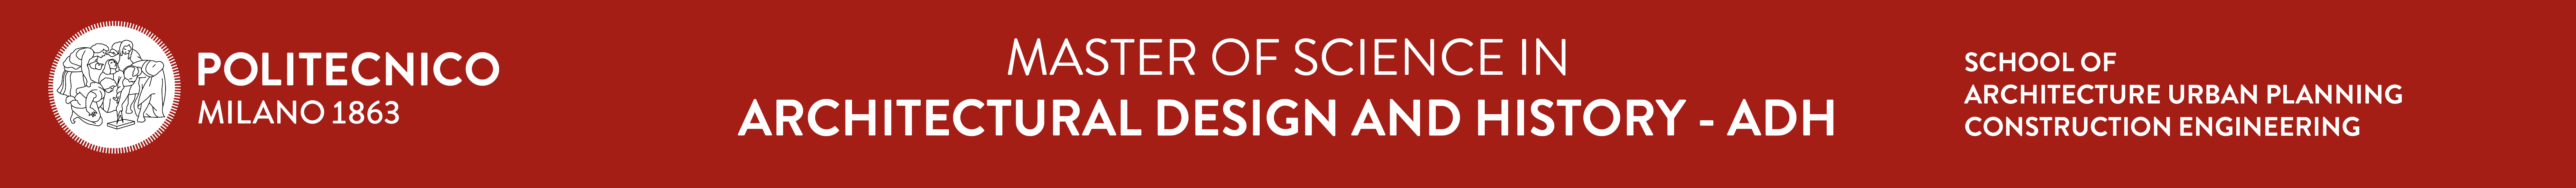 MASTER OF SCIENCE IN ARCHITECTURAL DESIGN AND HISTORY